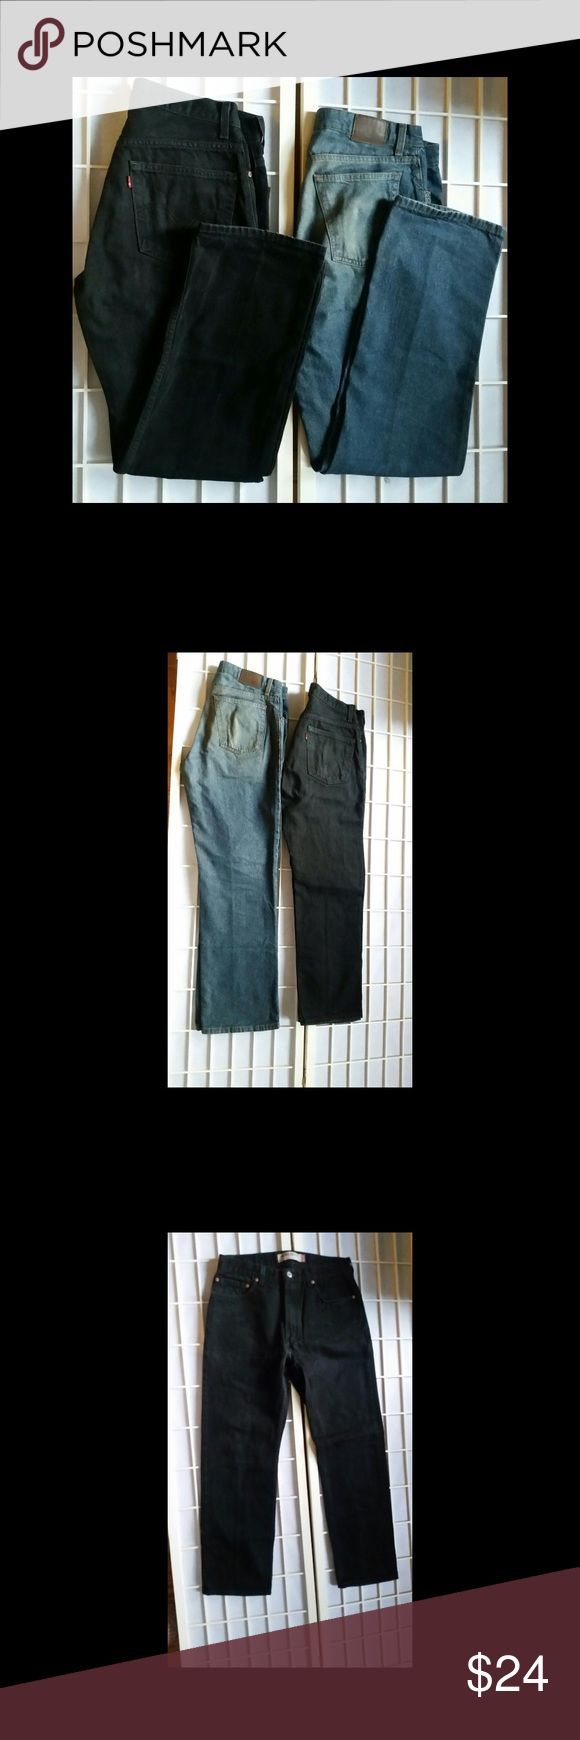 Men's Levis and St. John's Bay Jeans 34/32 Black Levis 505 Jeans Regular  Fit  Blue St. Johns Bay Jeans Classic Fit 2 Pairs  Excellent Condition. Levi's Jeans Relaxed